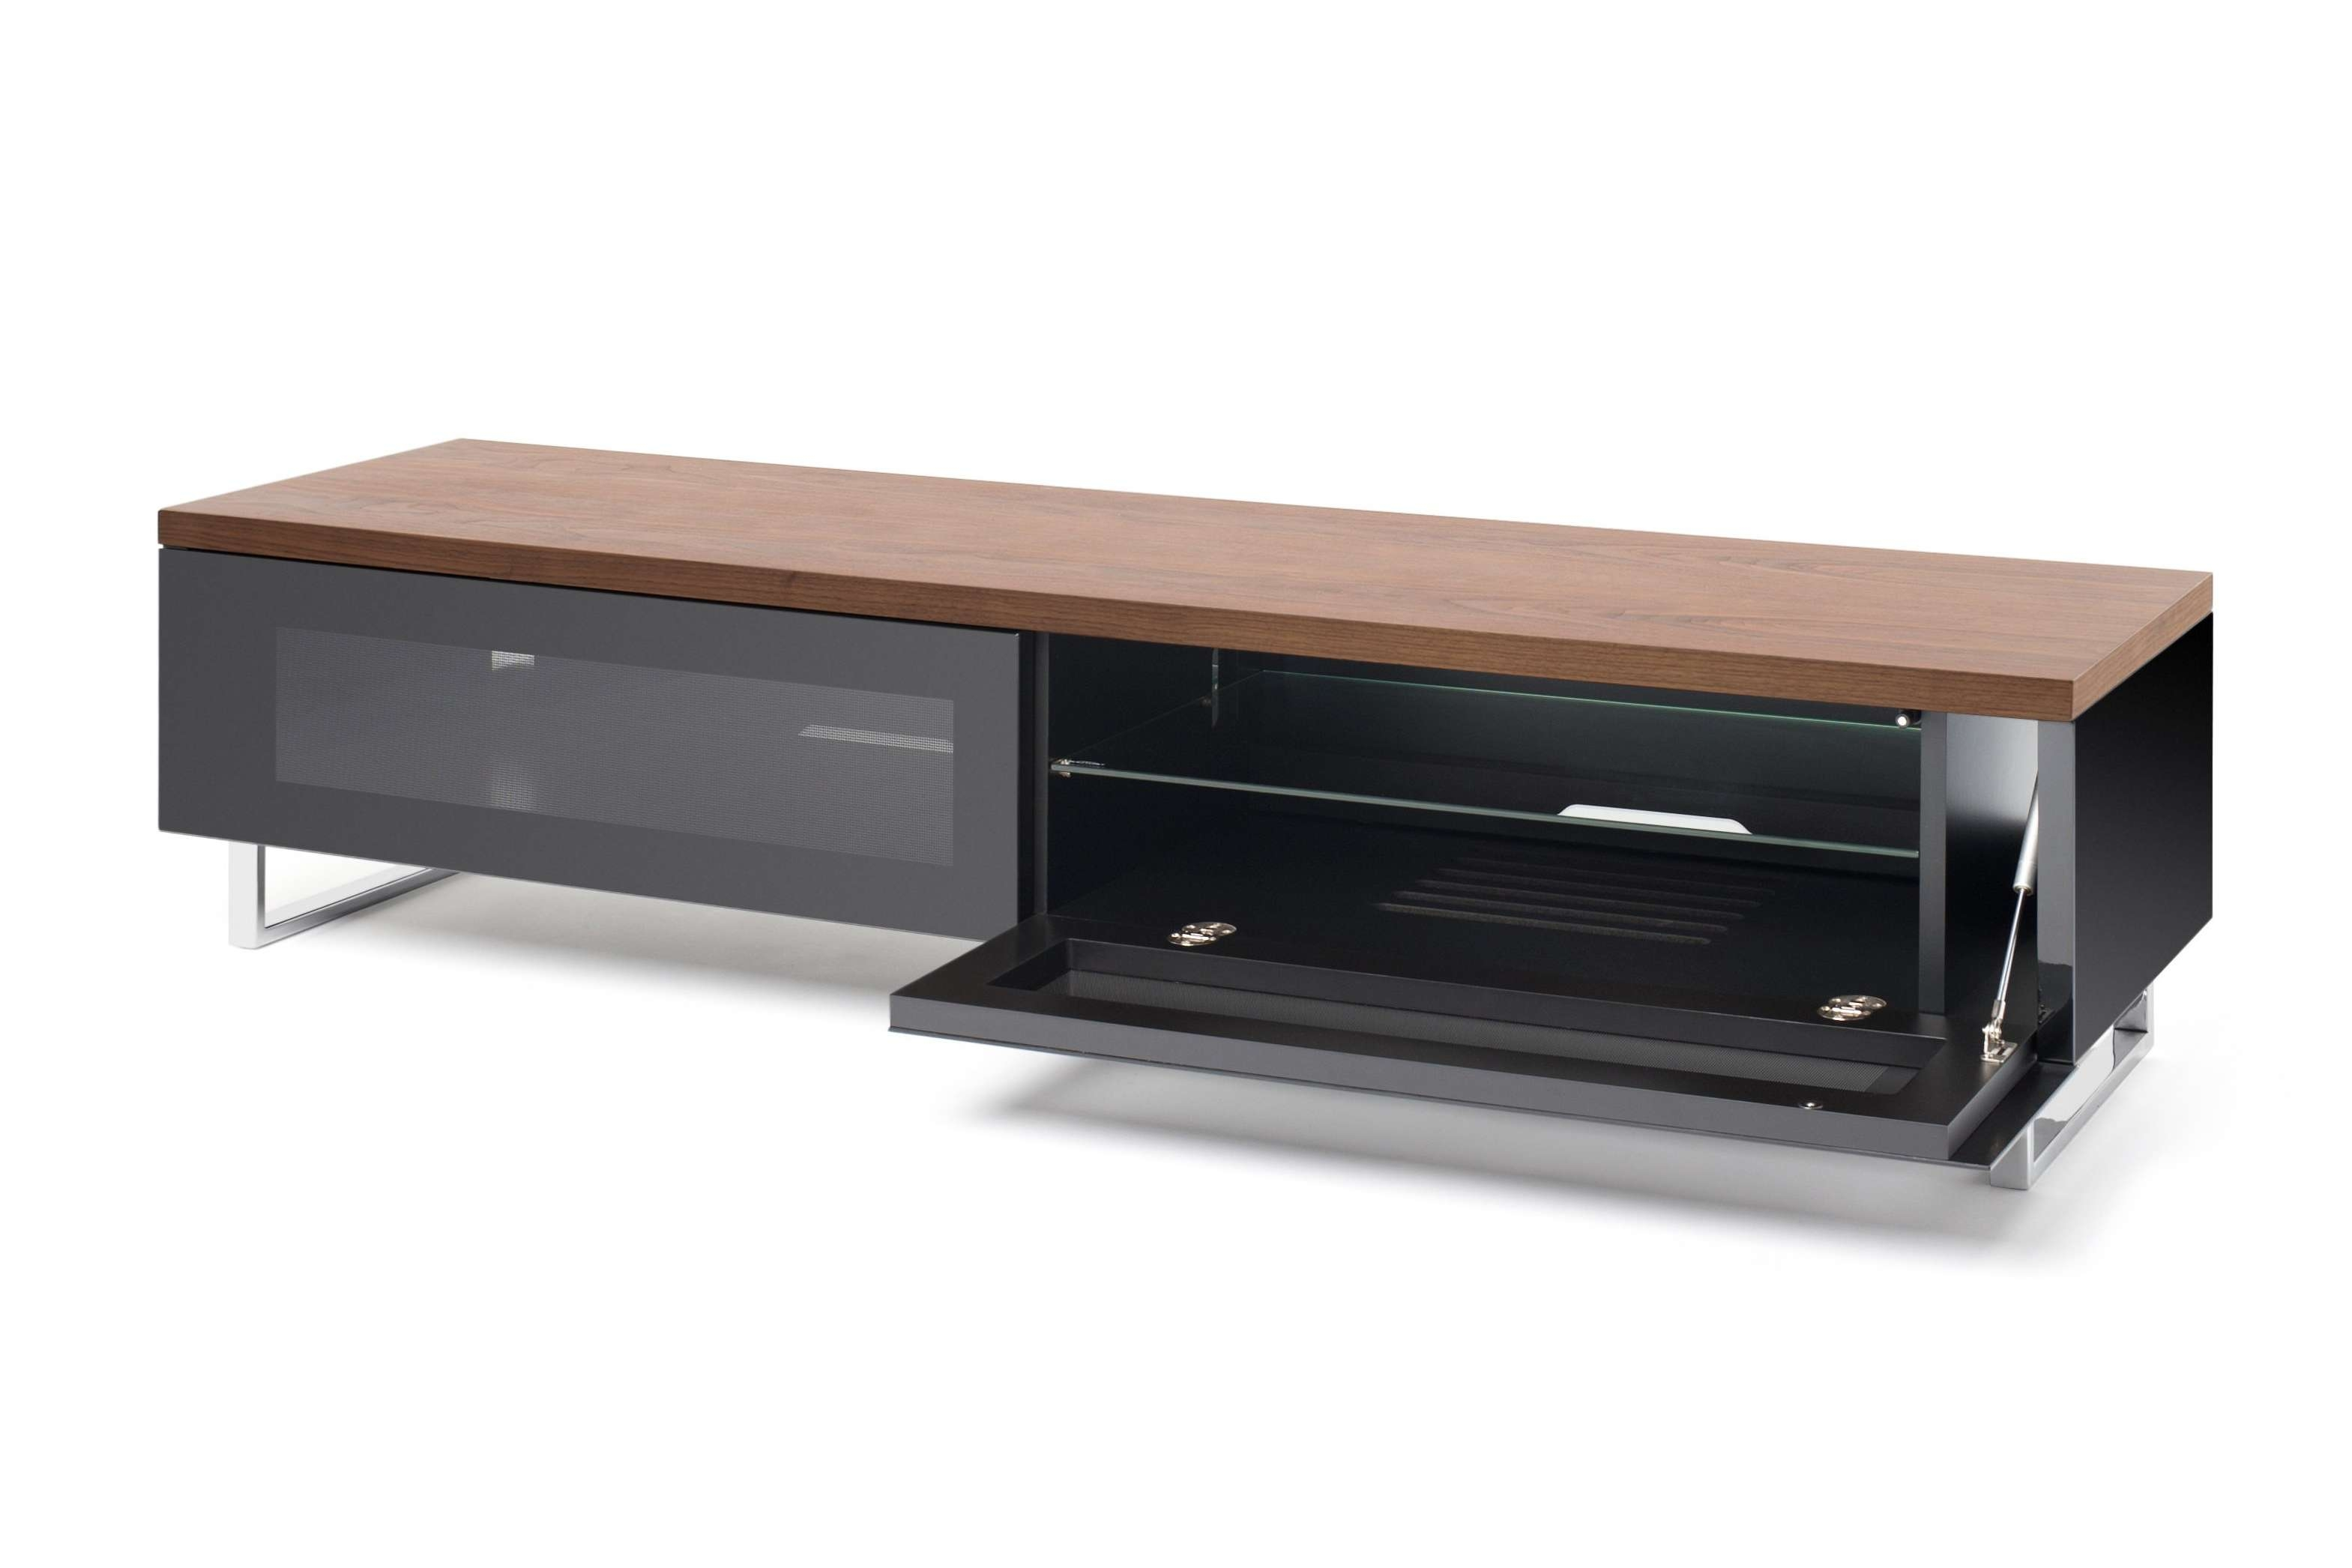 Best Modern Low Profile Tv Stand 58 About Remodel New Trends With Inside Modern Low Profile Tv Stands (View 2 of 15)